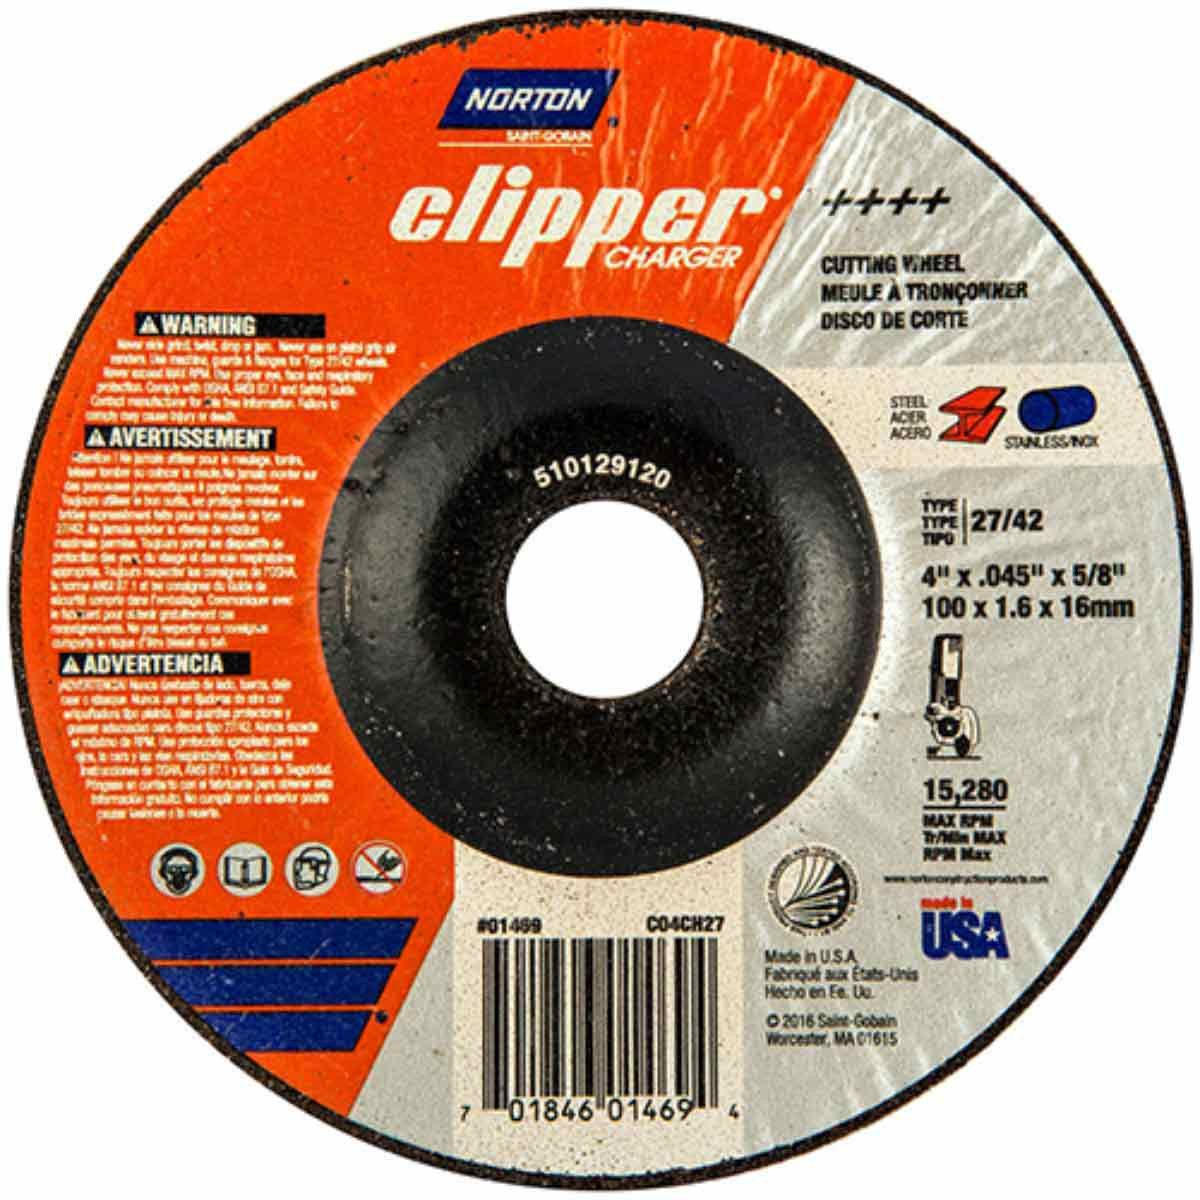 CO4CH27 Norton Charger Abrasive Type 27 Cut-Off Wheels